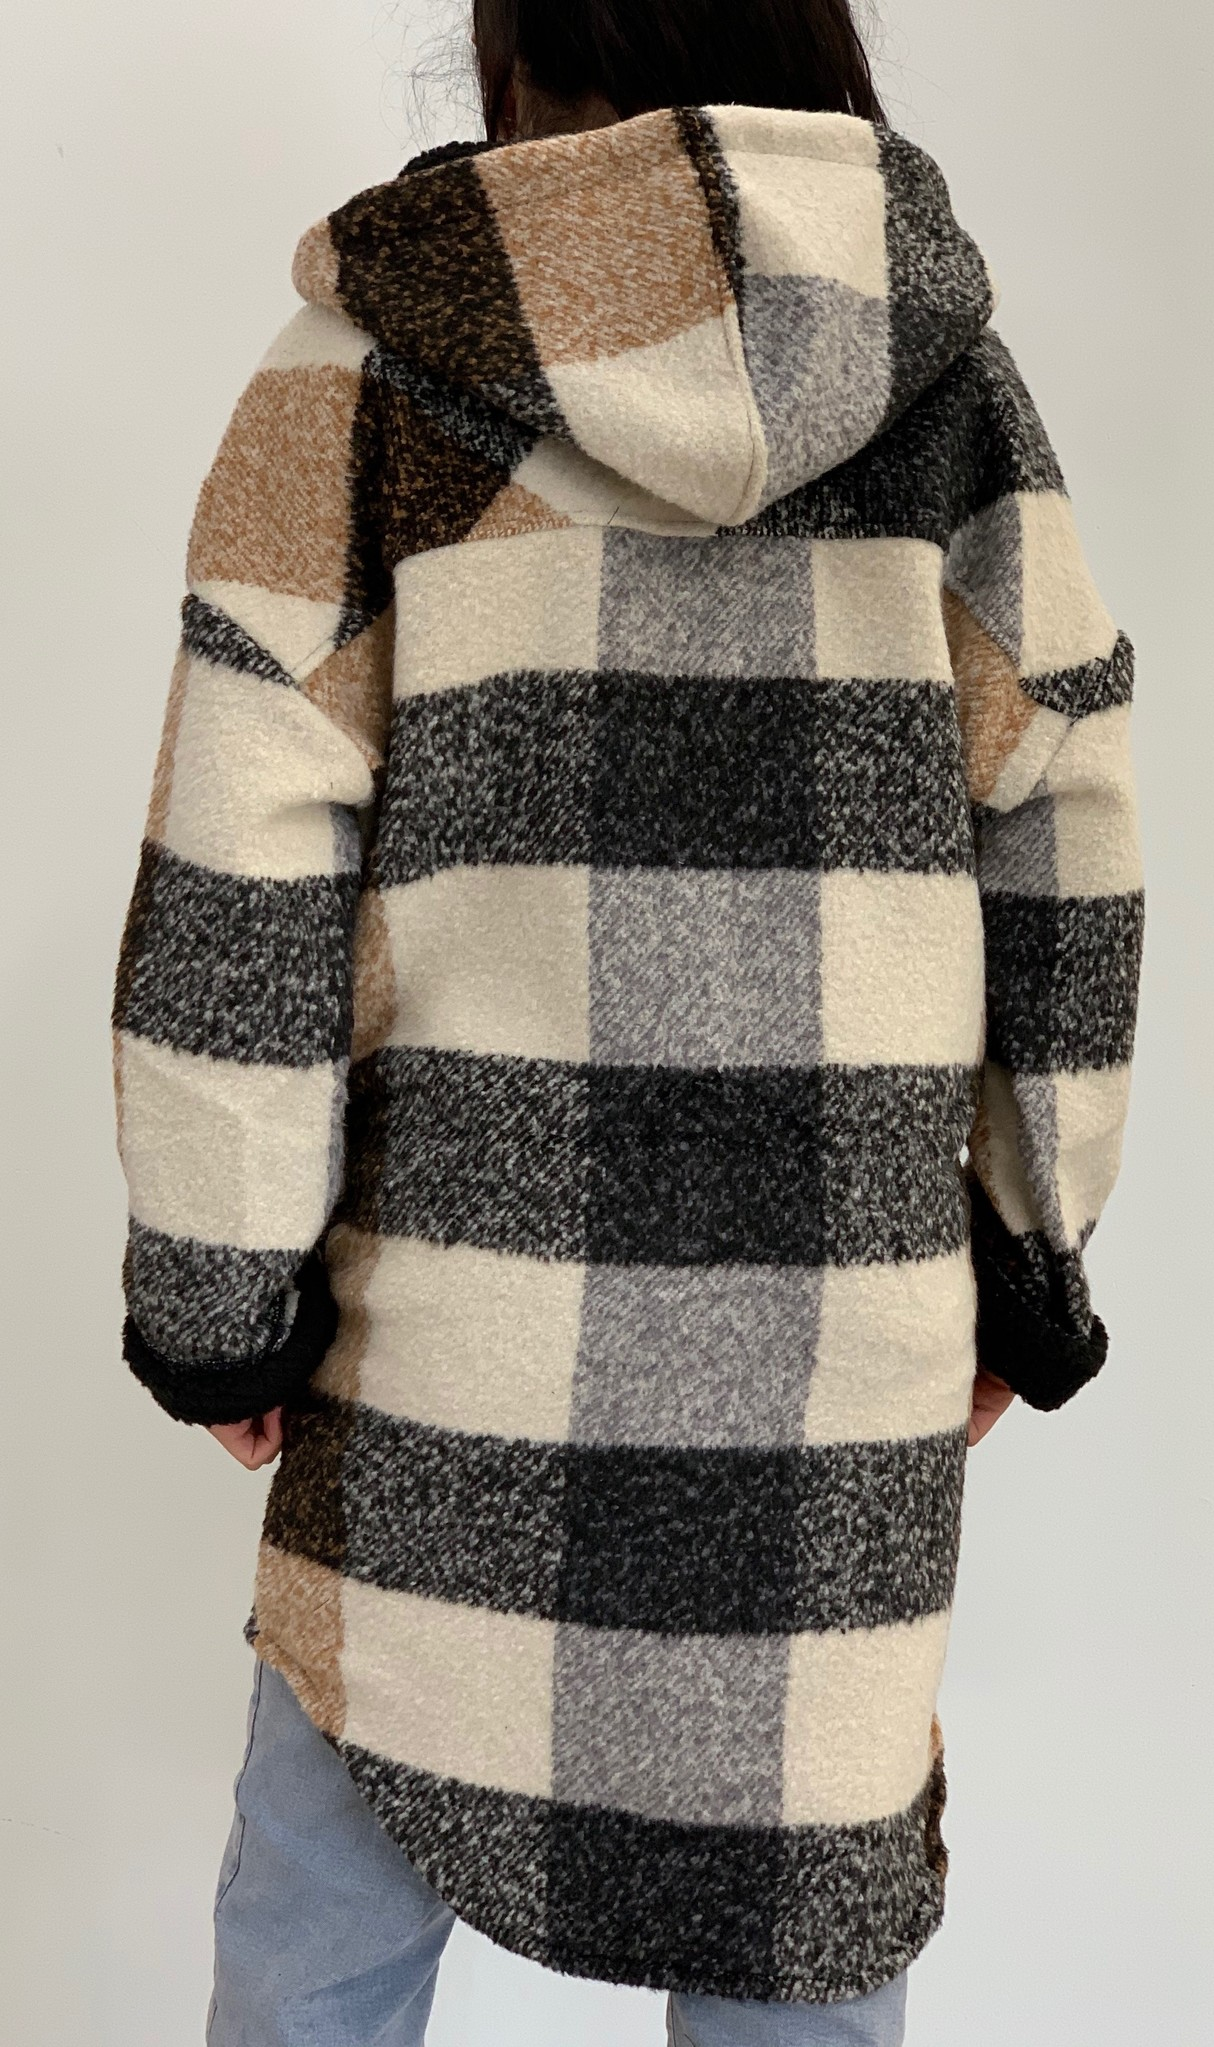 rd style - plaid coat